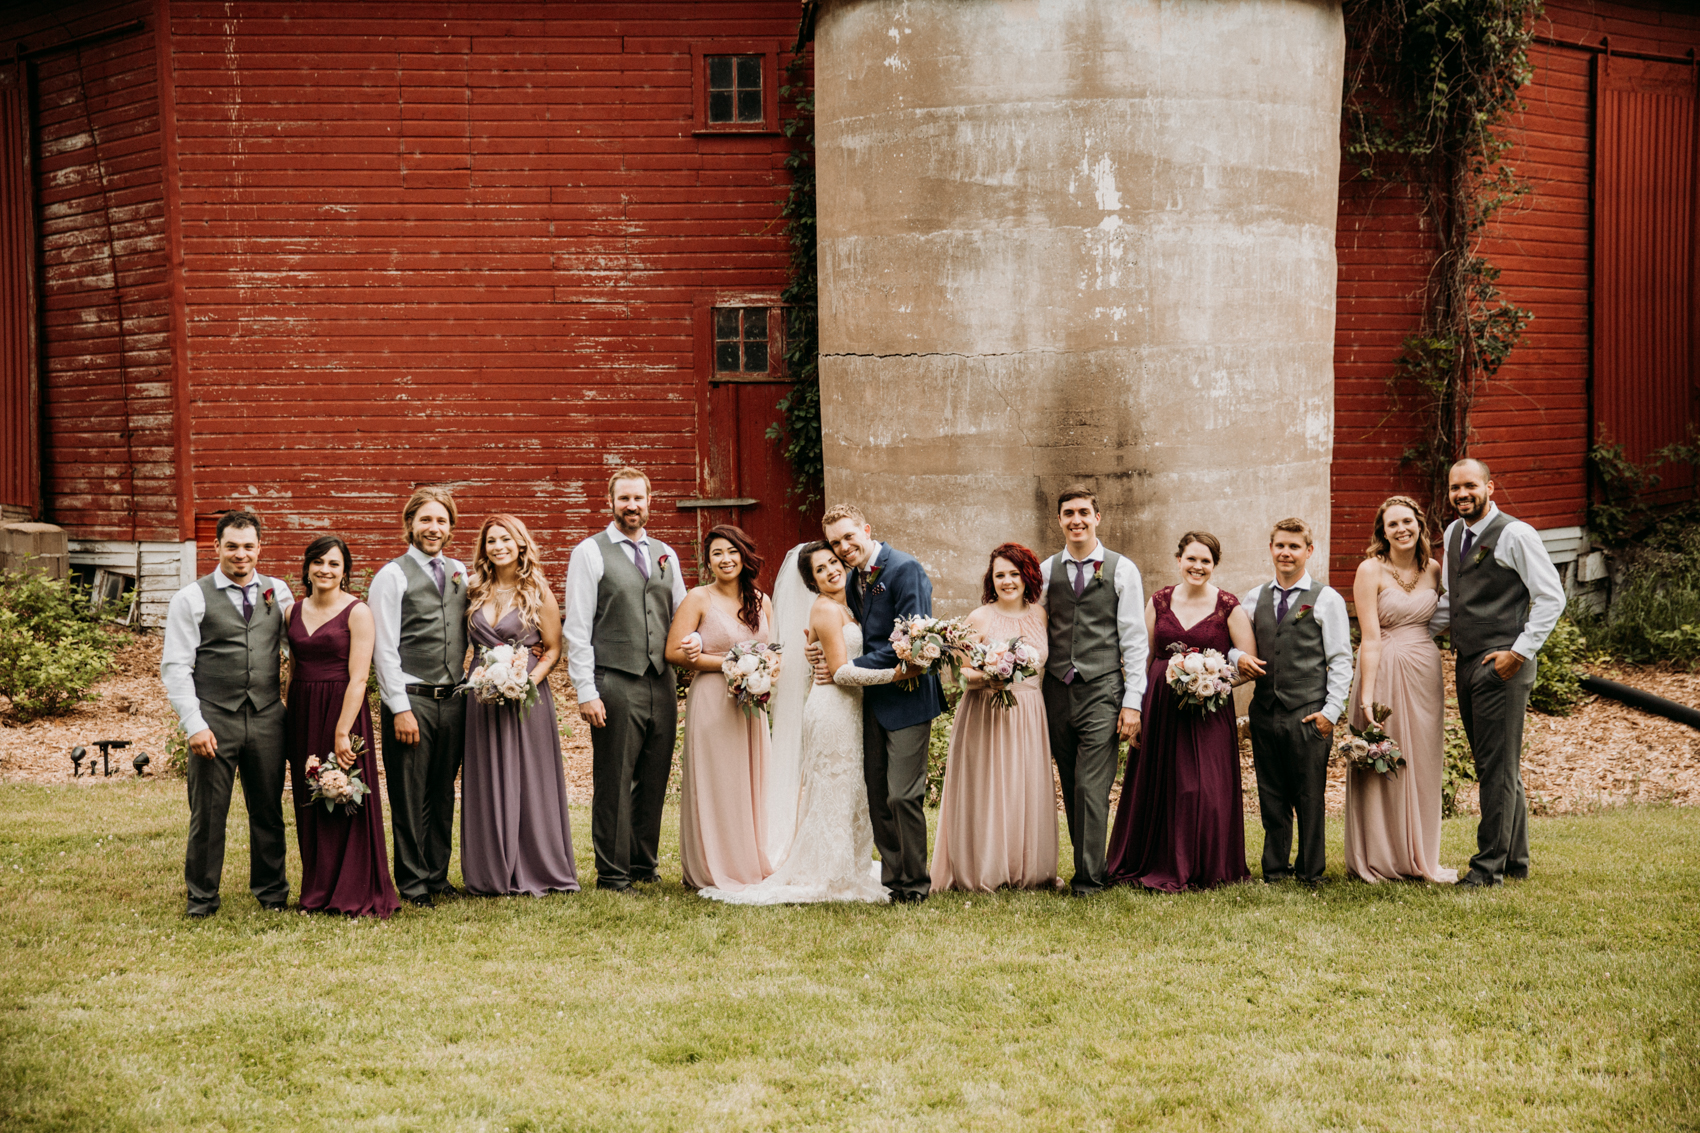 dusty-pinks-bridesmaid-dresses-the-hidden-meadow-and-barn-pepin-wi-7.jpg